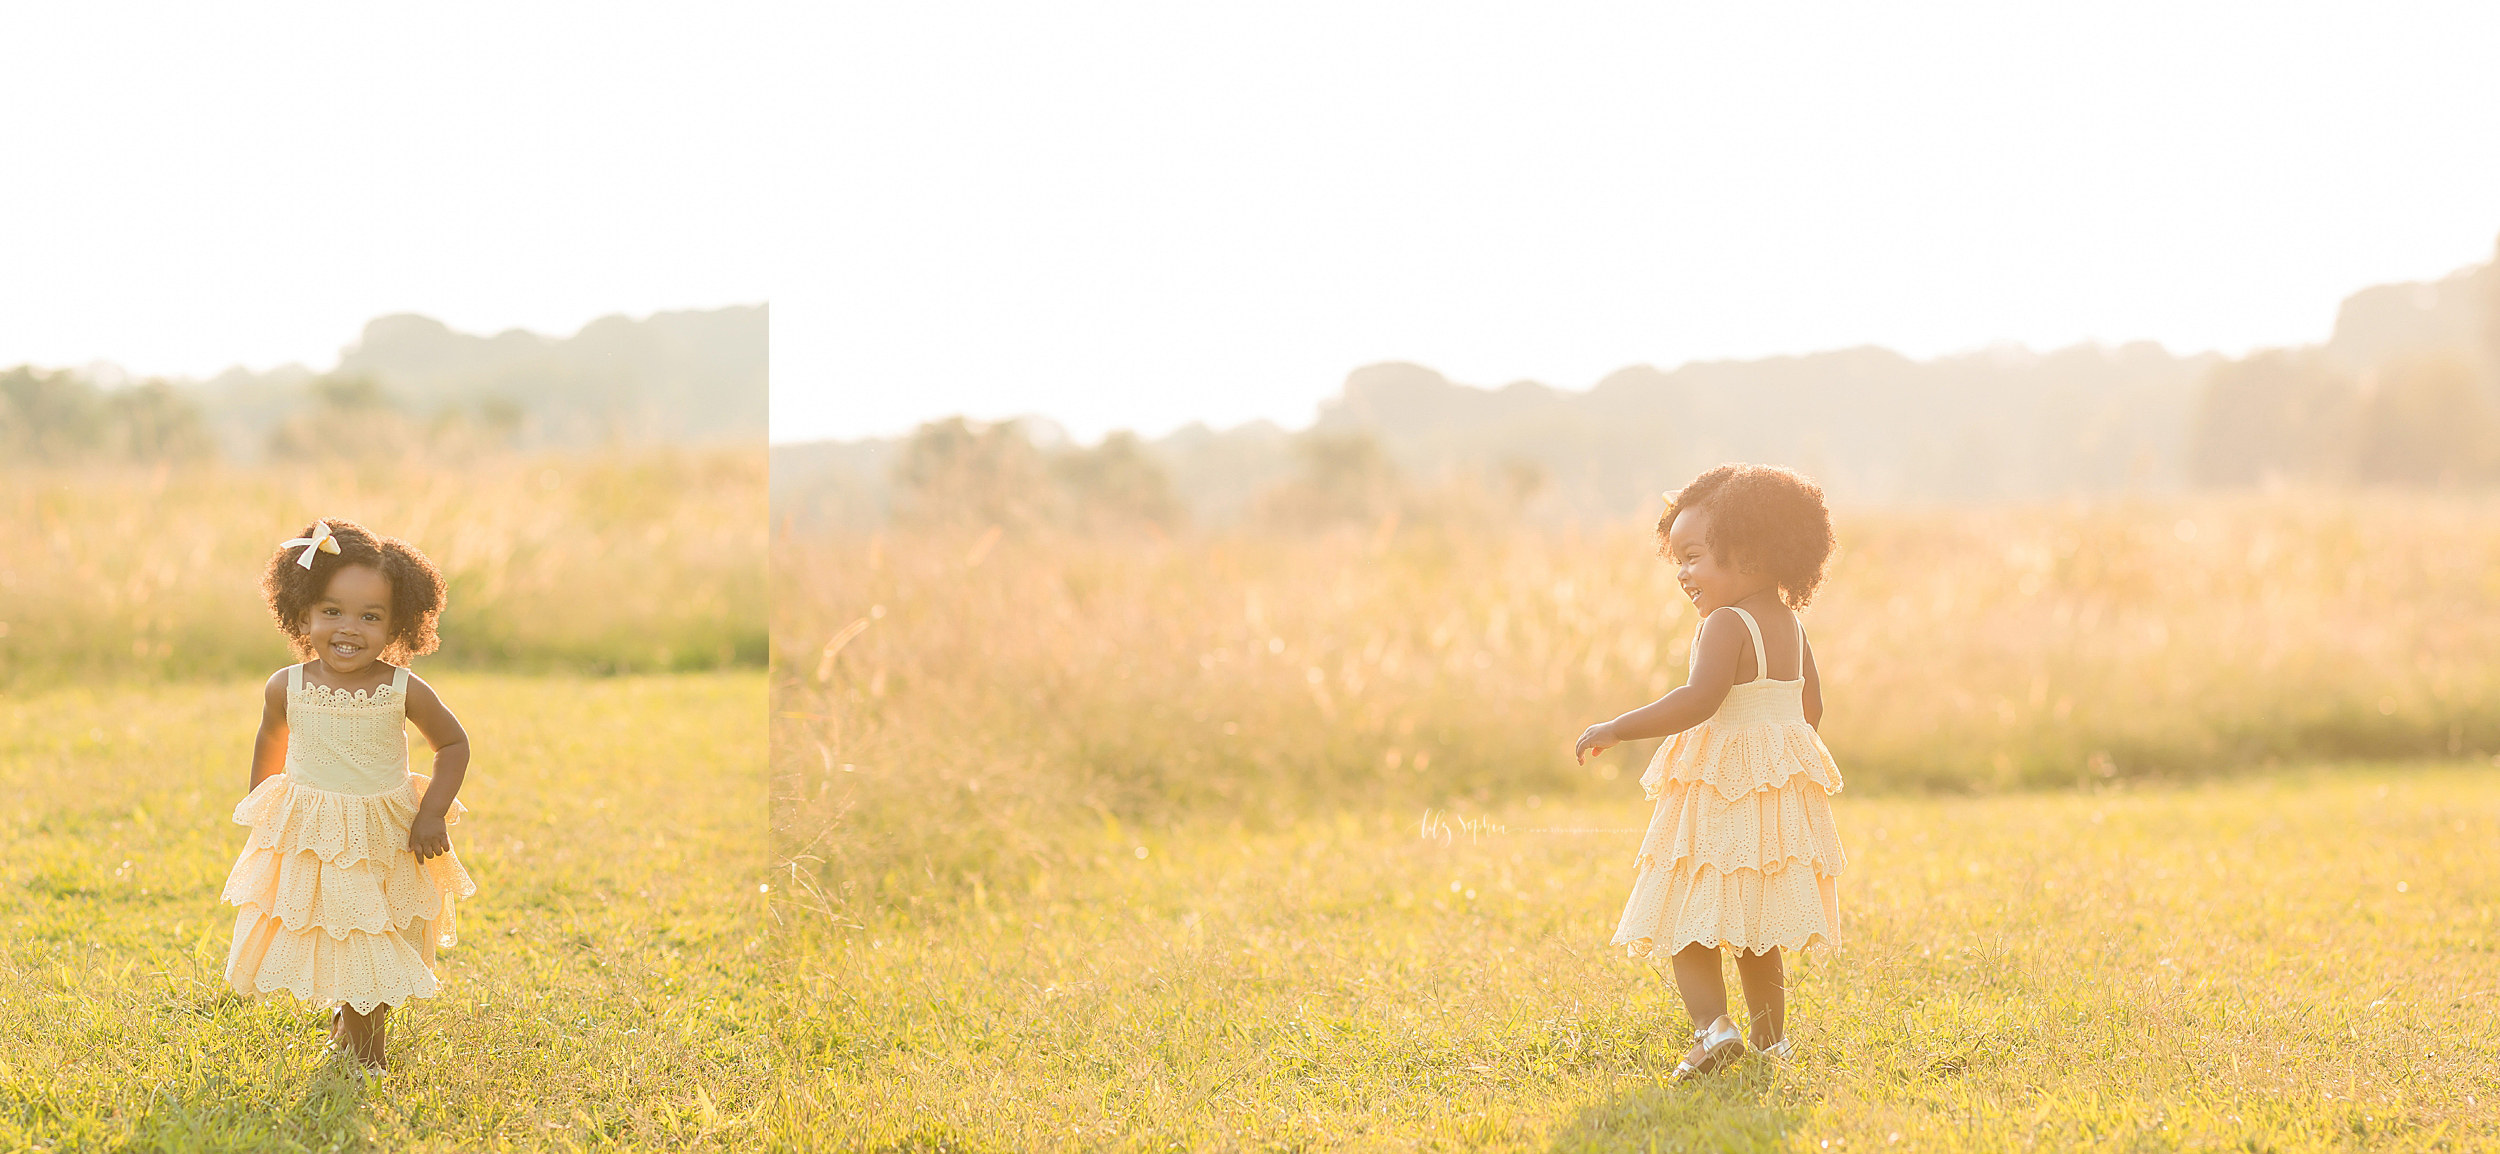 atlanta-midtown-brookhaven-ashford-dunwoody-decatur-lily-sophia-photography-outdoor-sunset-field-mountain-family-photographer-toddler-girl_0397.jpg